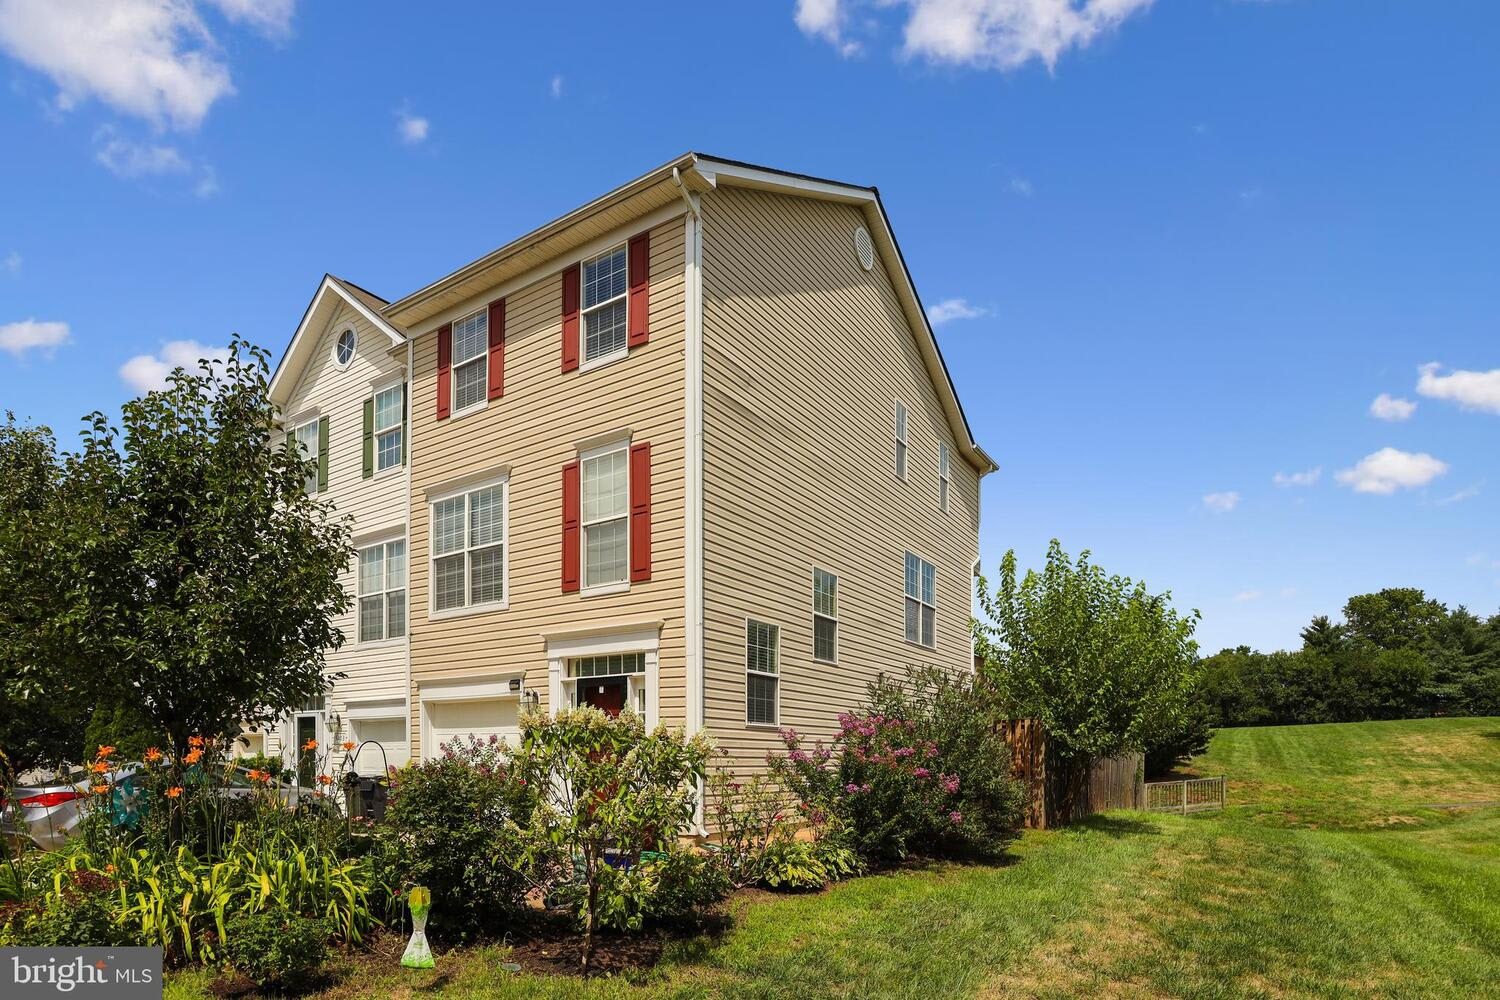 9201 Acer Ln photo